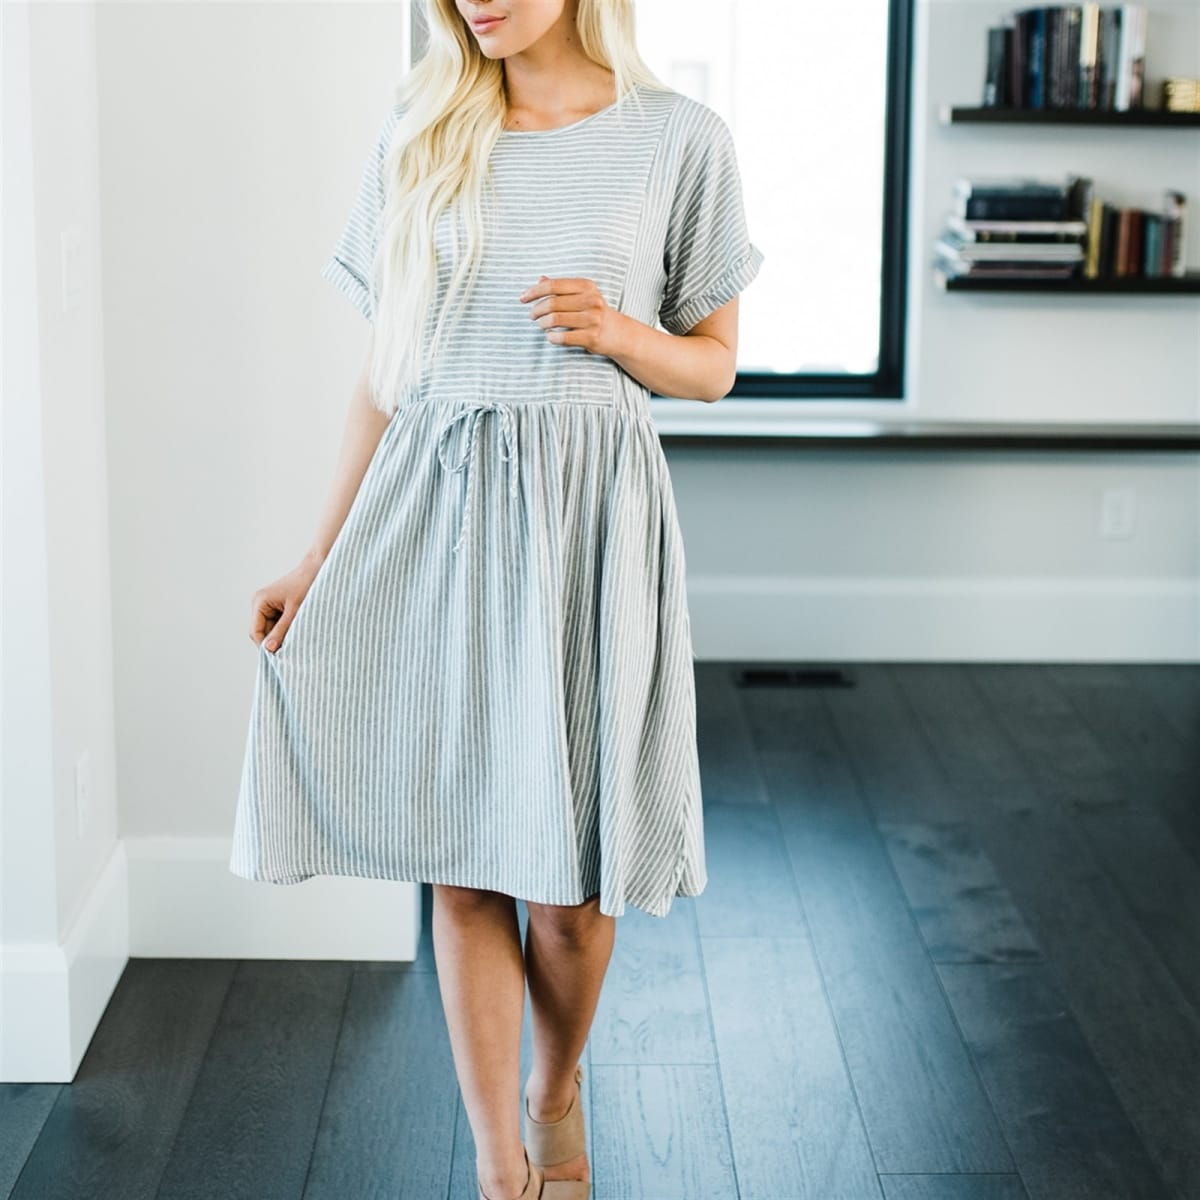 Summer dresses: woman wearing an above the knee striped dress